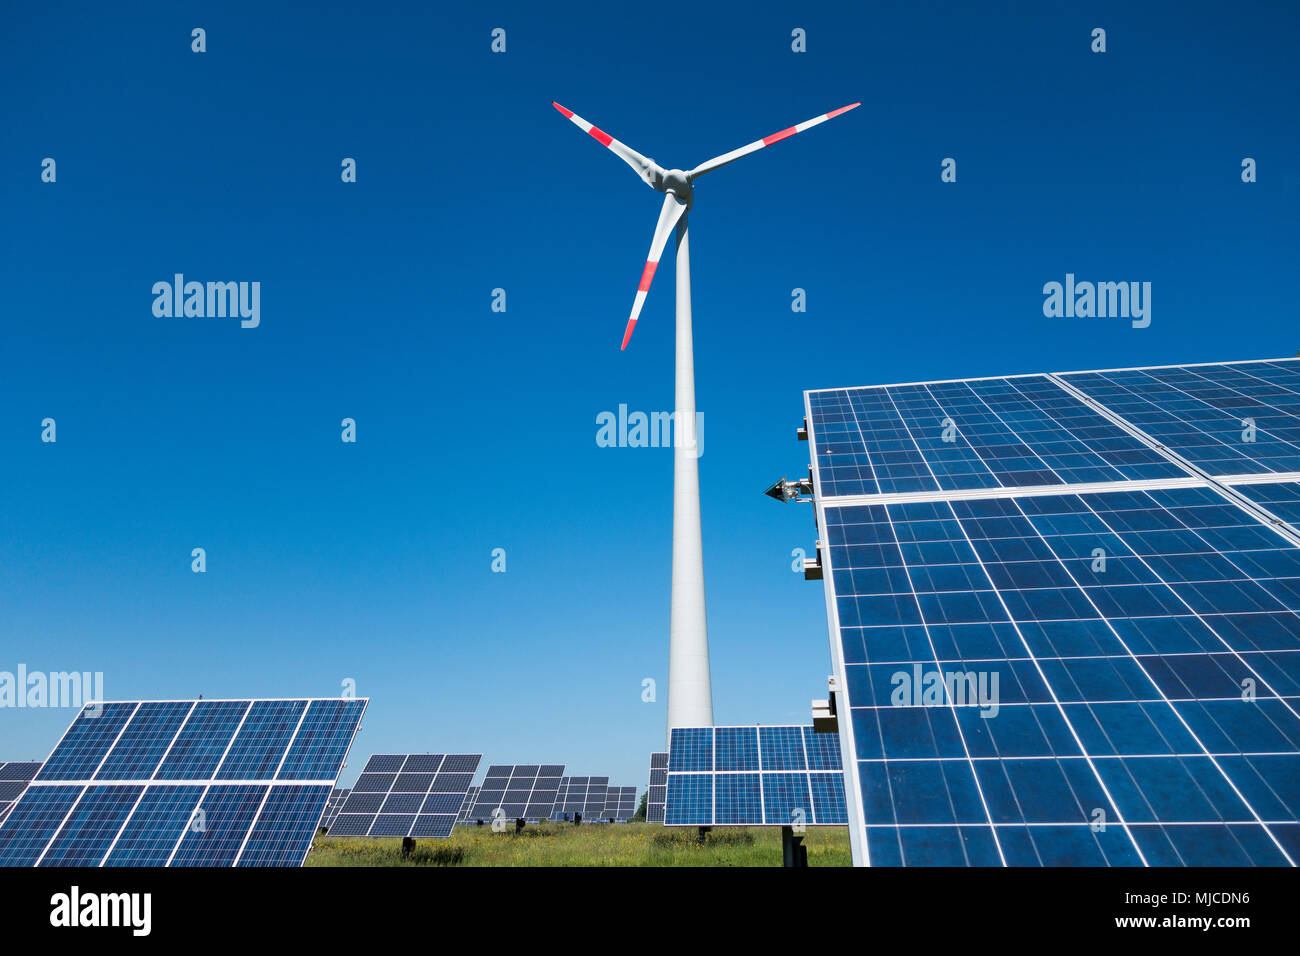 a combination of windpower and solarpower, windmill and solarpanel - Stock Image